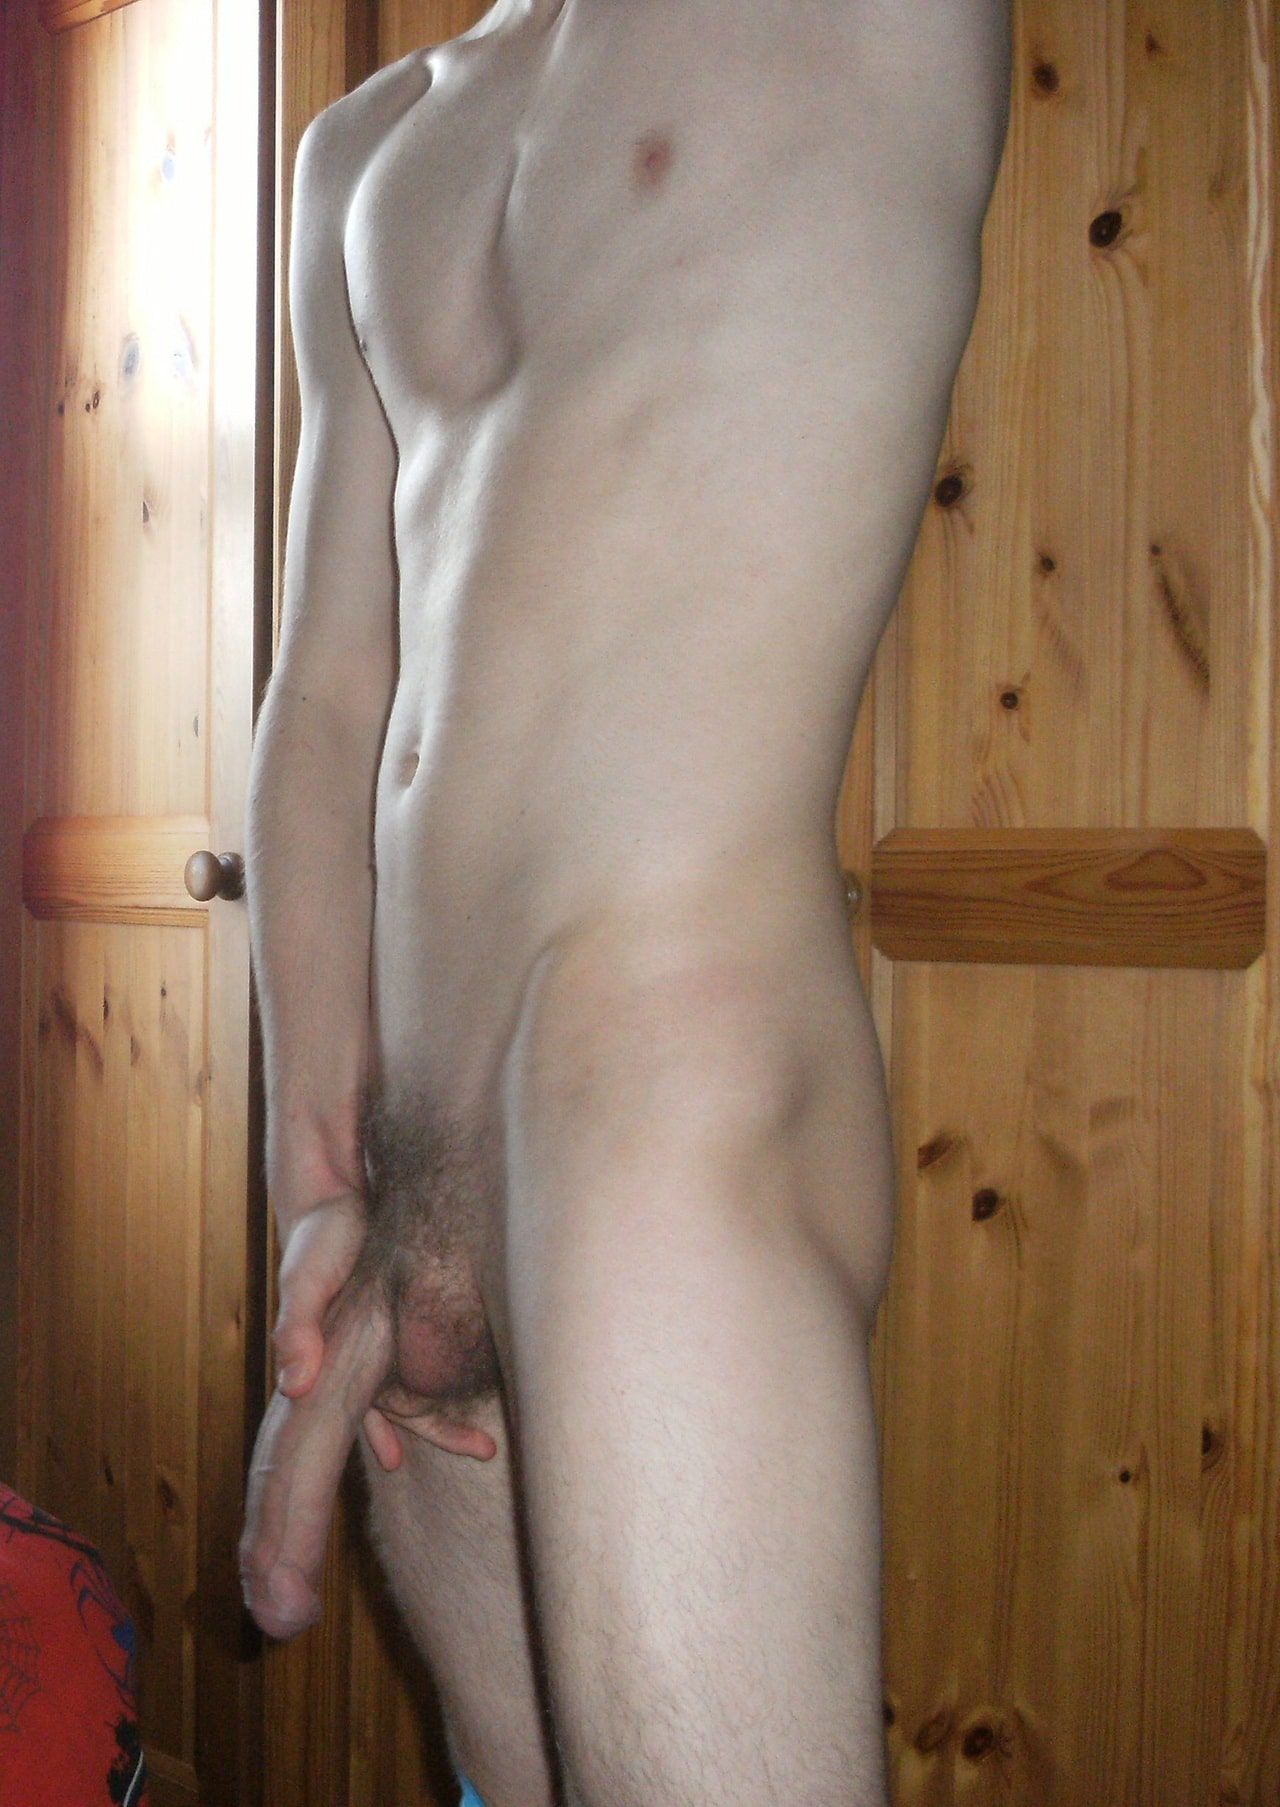 Slim Twink With A Nice Big Cock